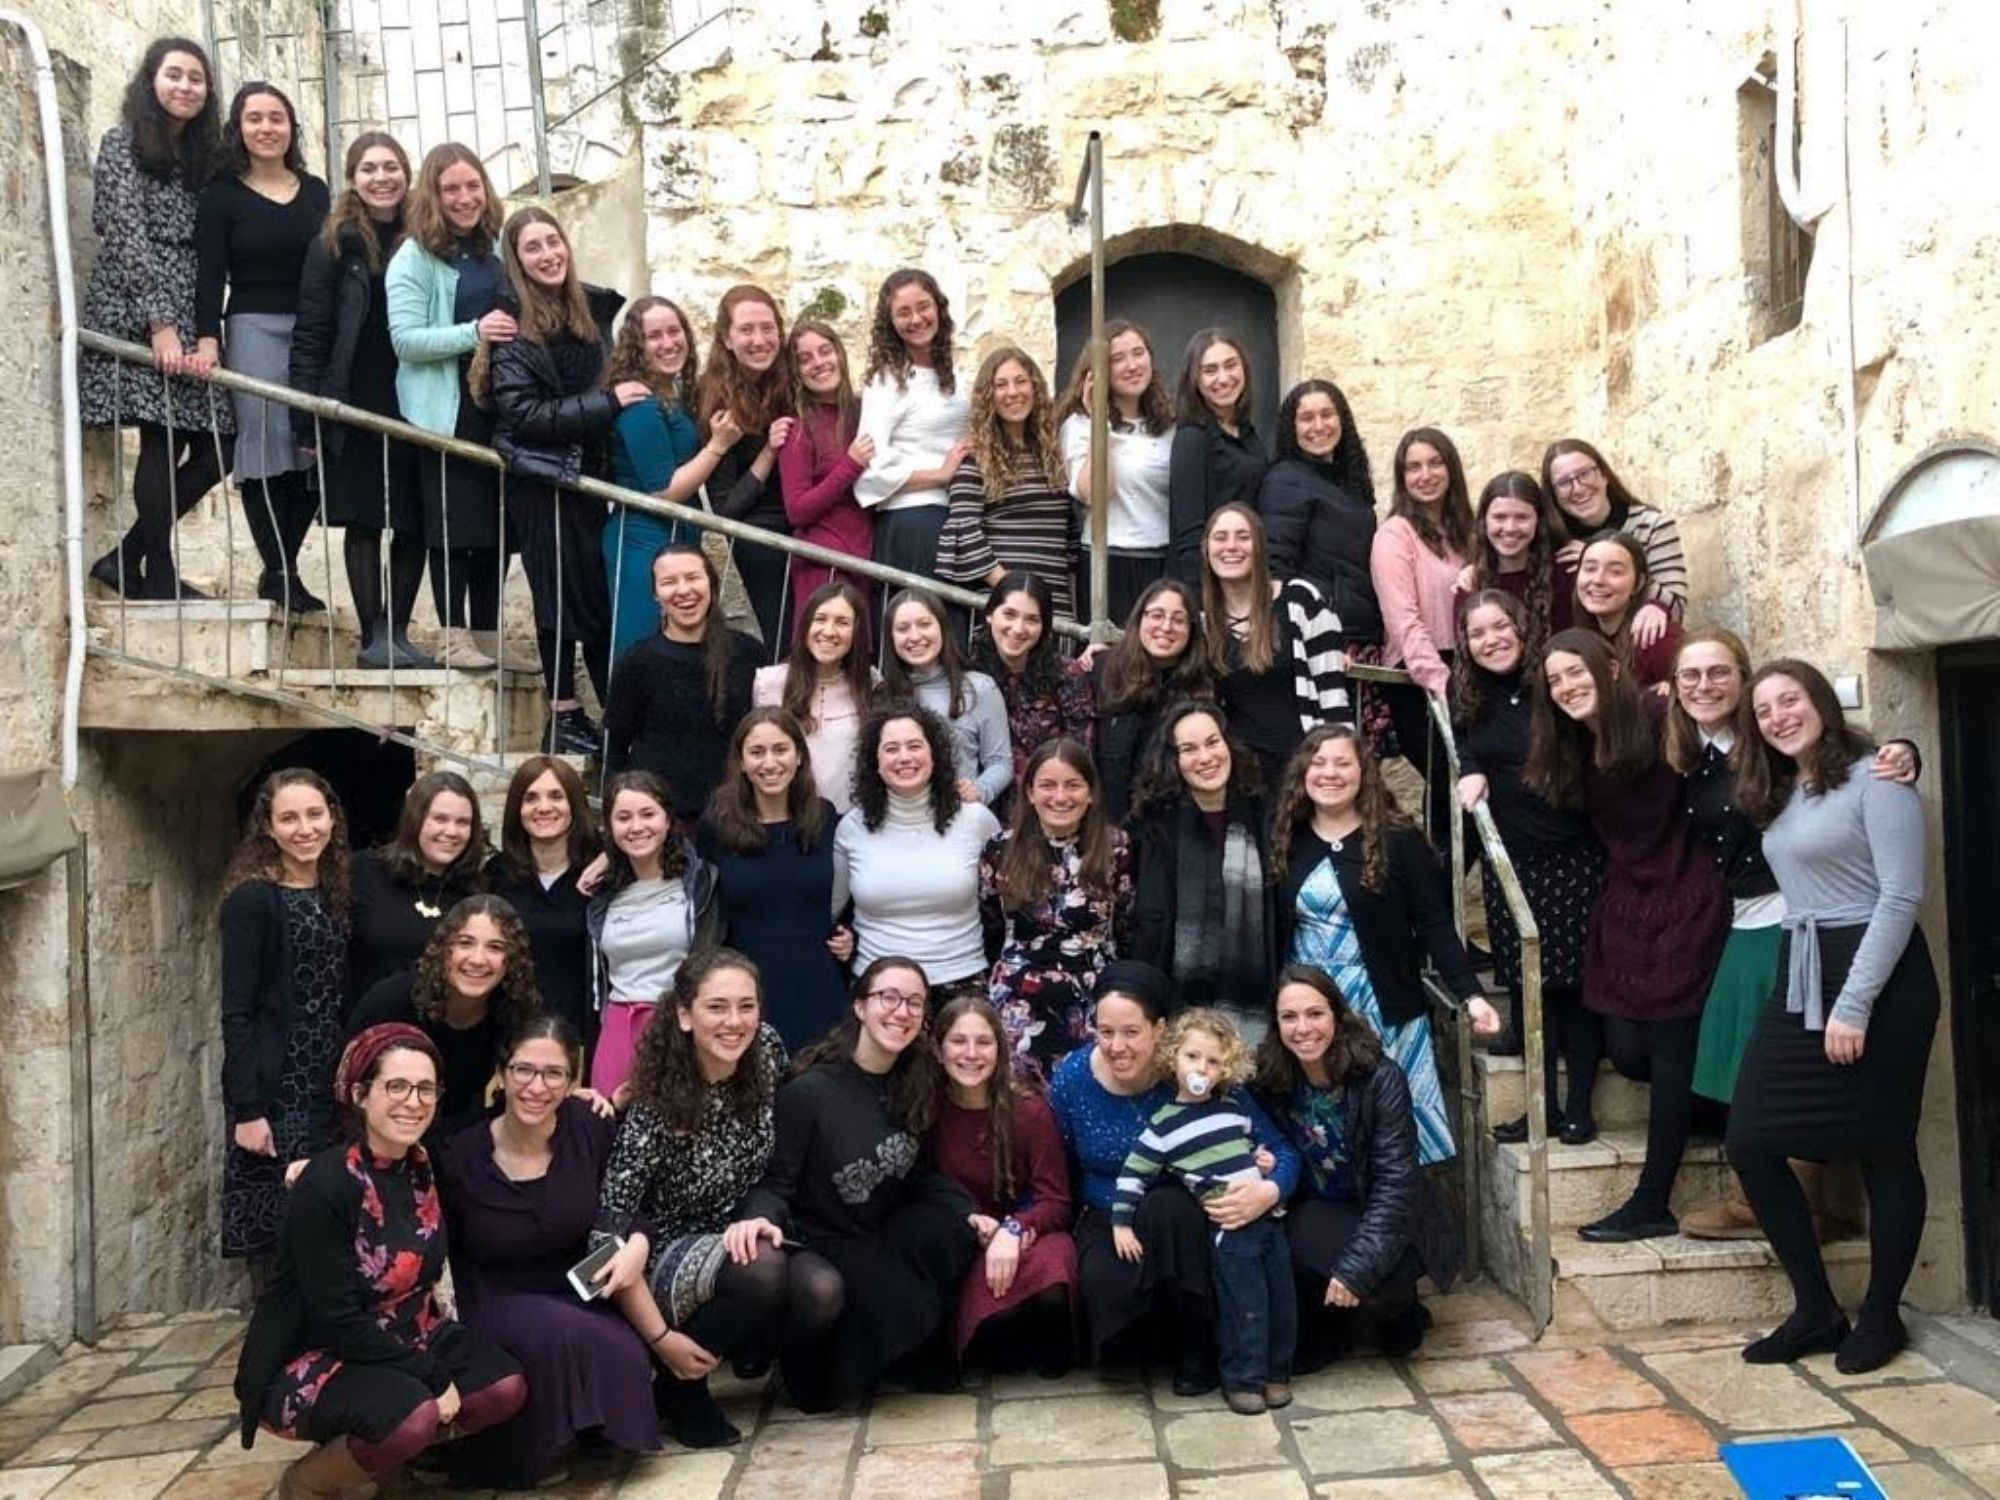 Migdal Oz- SKA Beit Midrash for Women